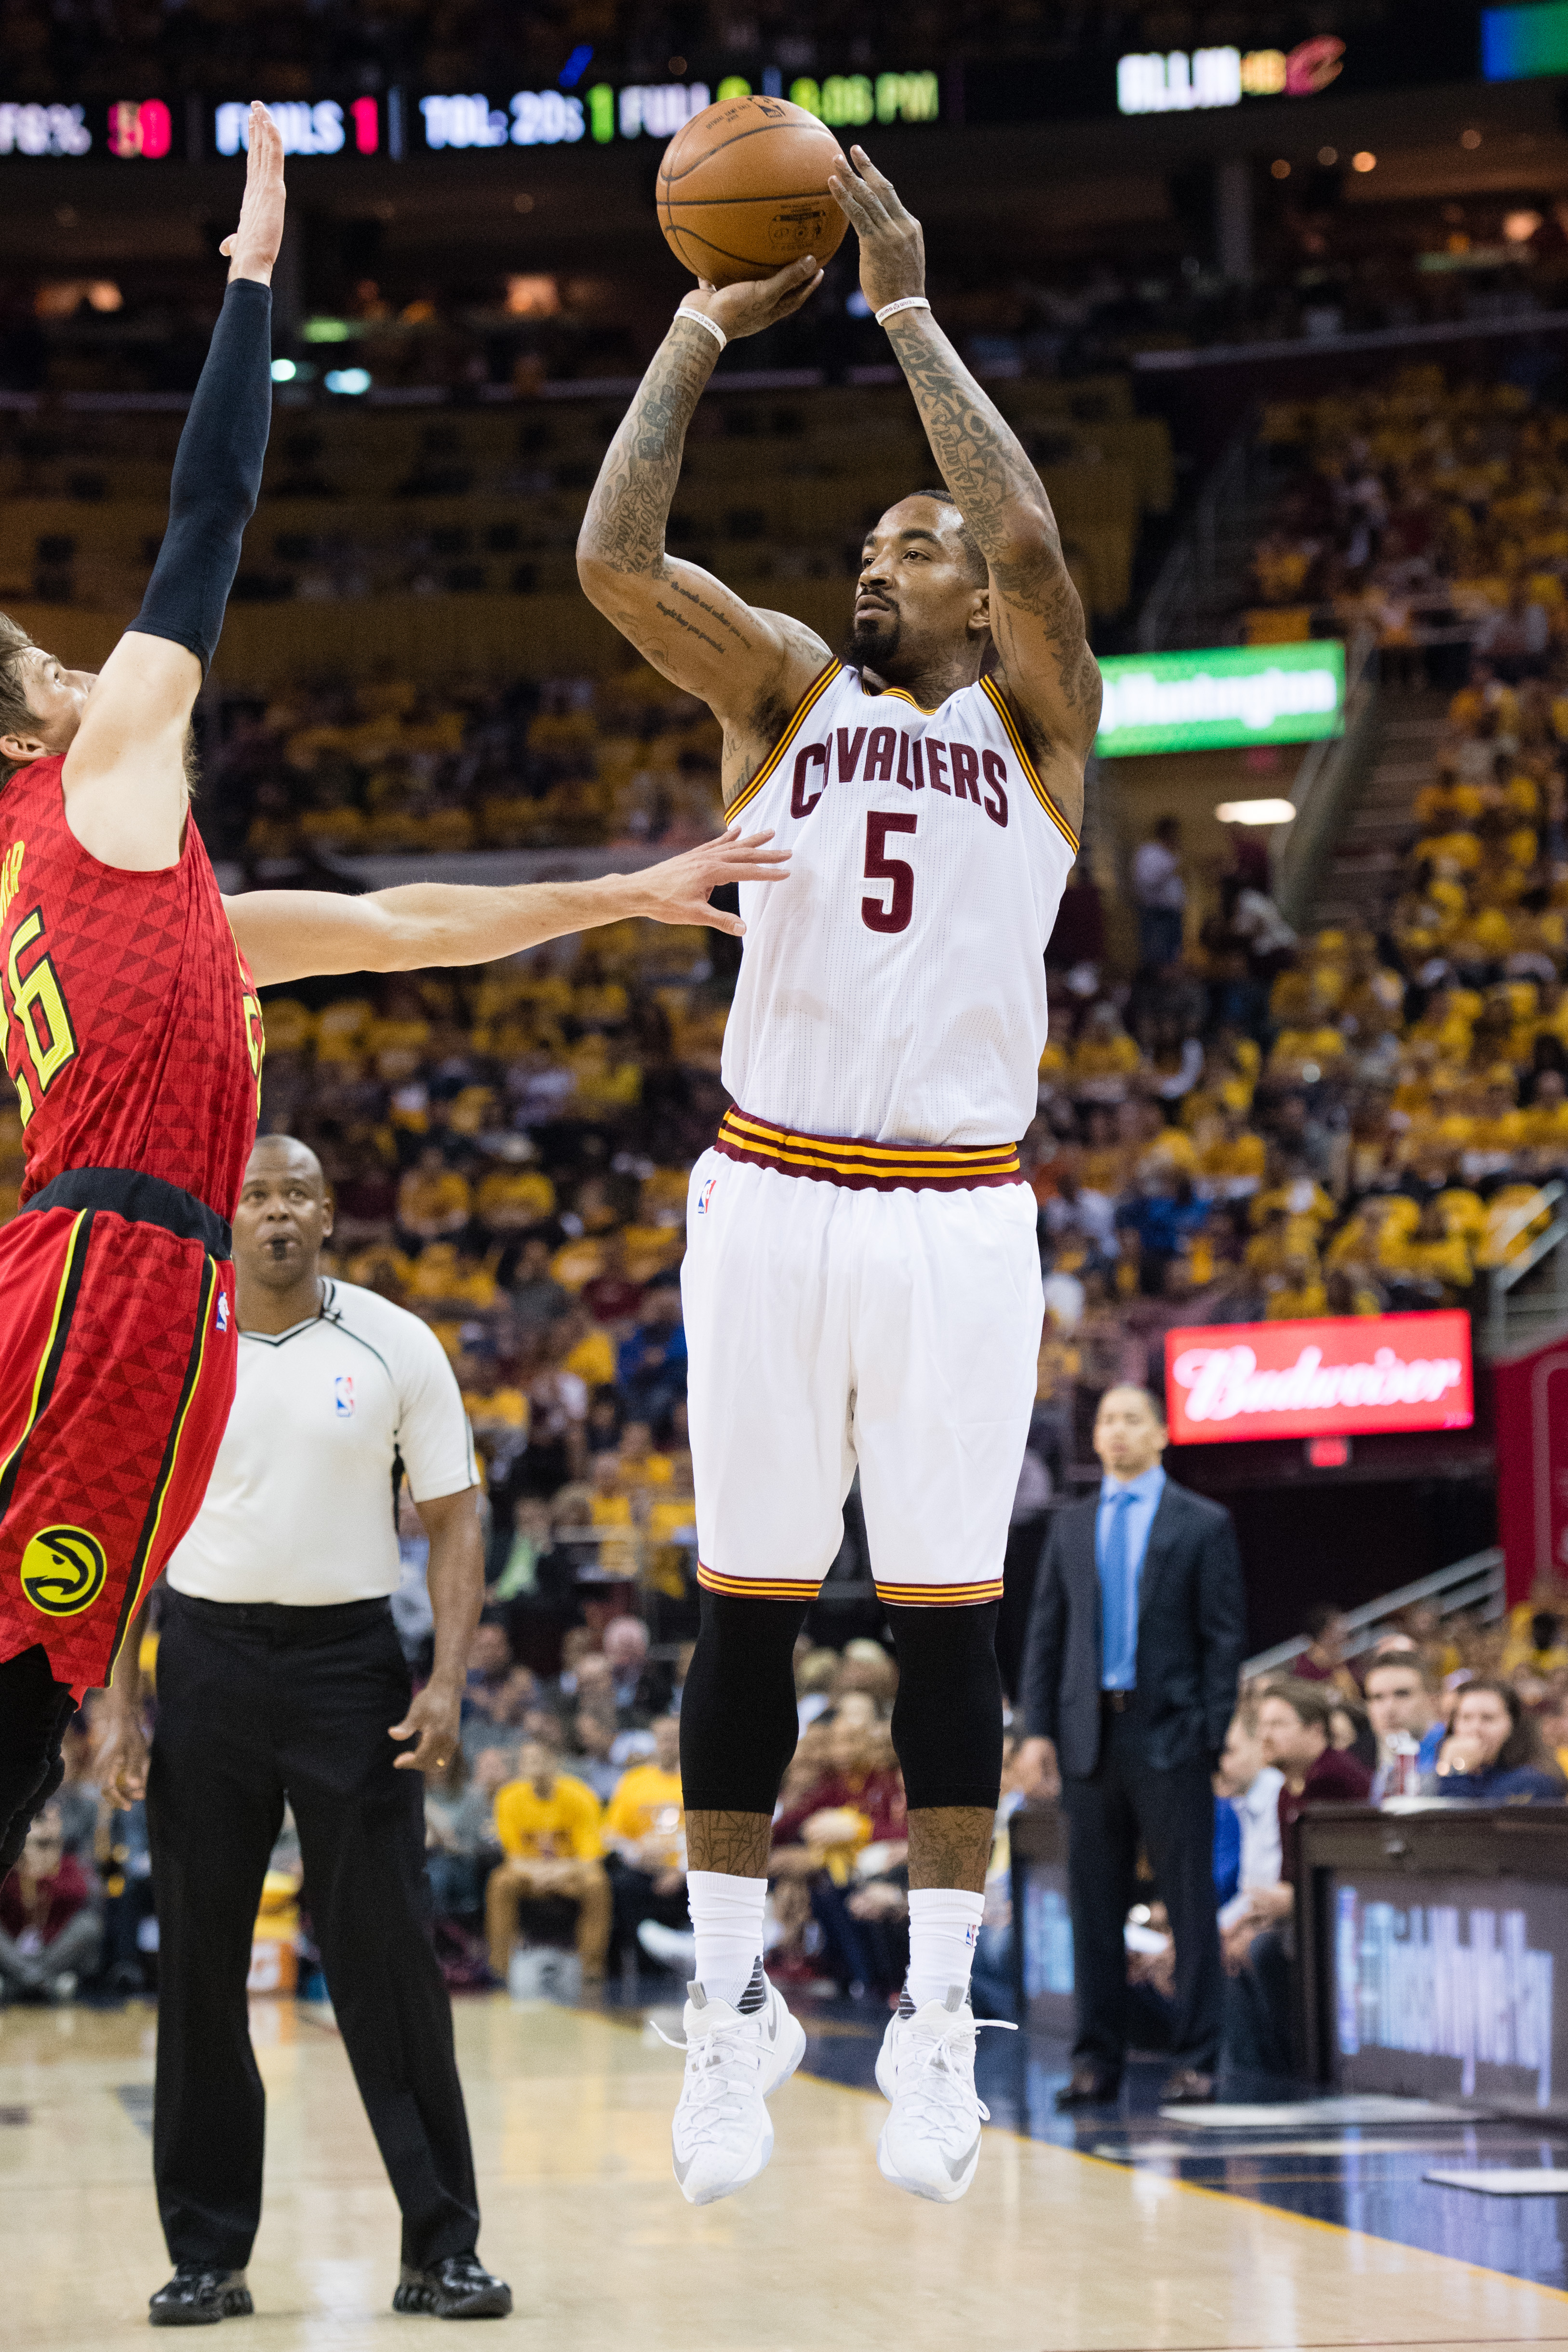 CLEVELAND, OH - MAY 4: J.R. Smith #5 of the Cleveland Cavaliers shoots a three point jump shot over Kyle Korver #26 of the Atlanta Hawks during the first half of the NBA Eastern Conference semifinals at Quicken Loans Arena on May 4, 2016 in Cleveland, Ohi